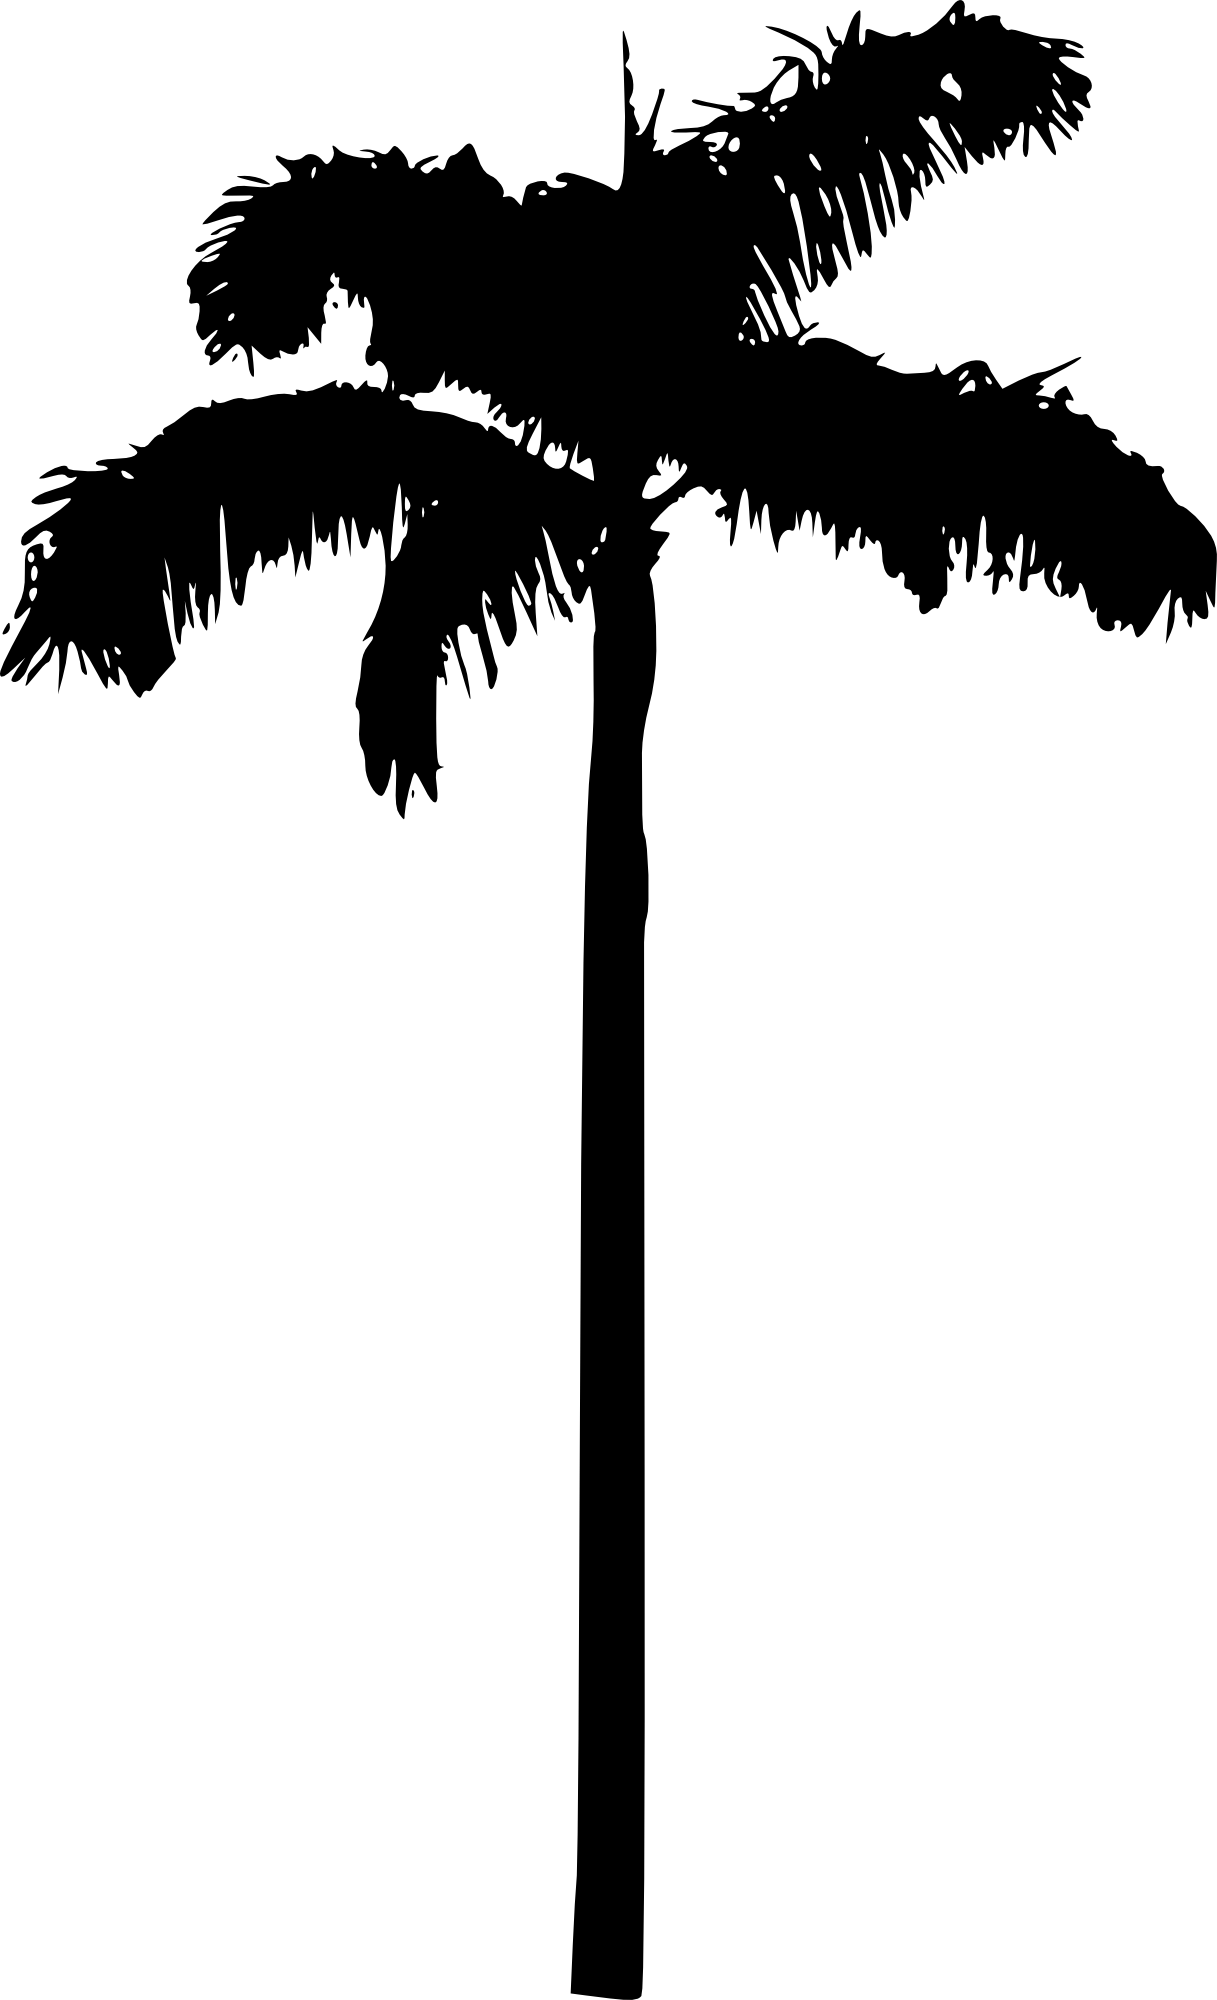 hight resolution of 100 free clipart palm tree silhouette free images at clker com